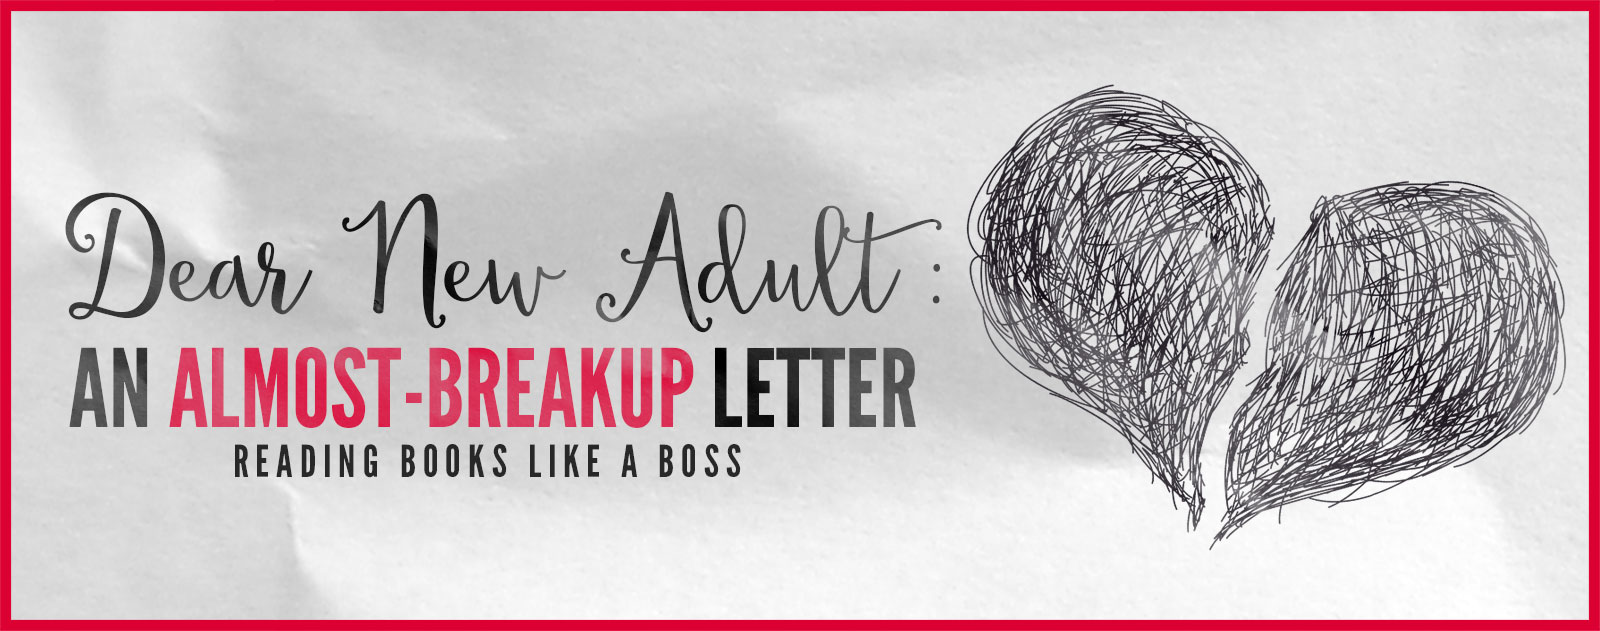 Dear New Adult: An Almost-Breakup Letter